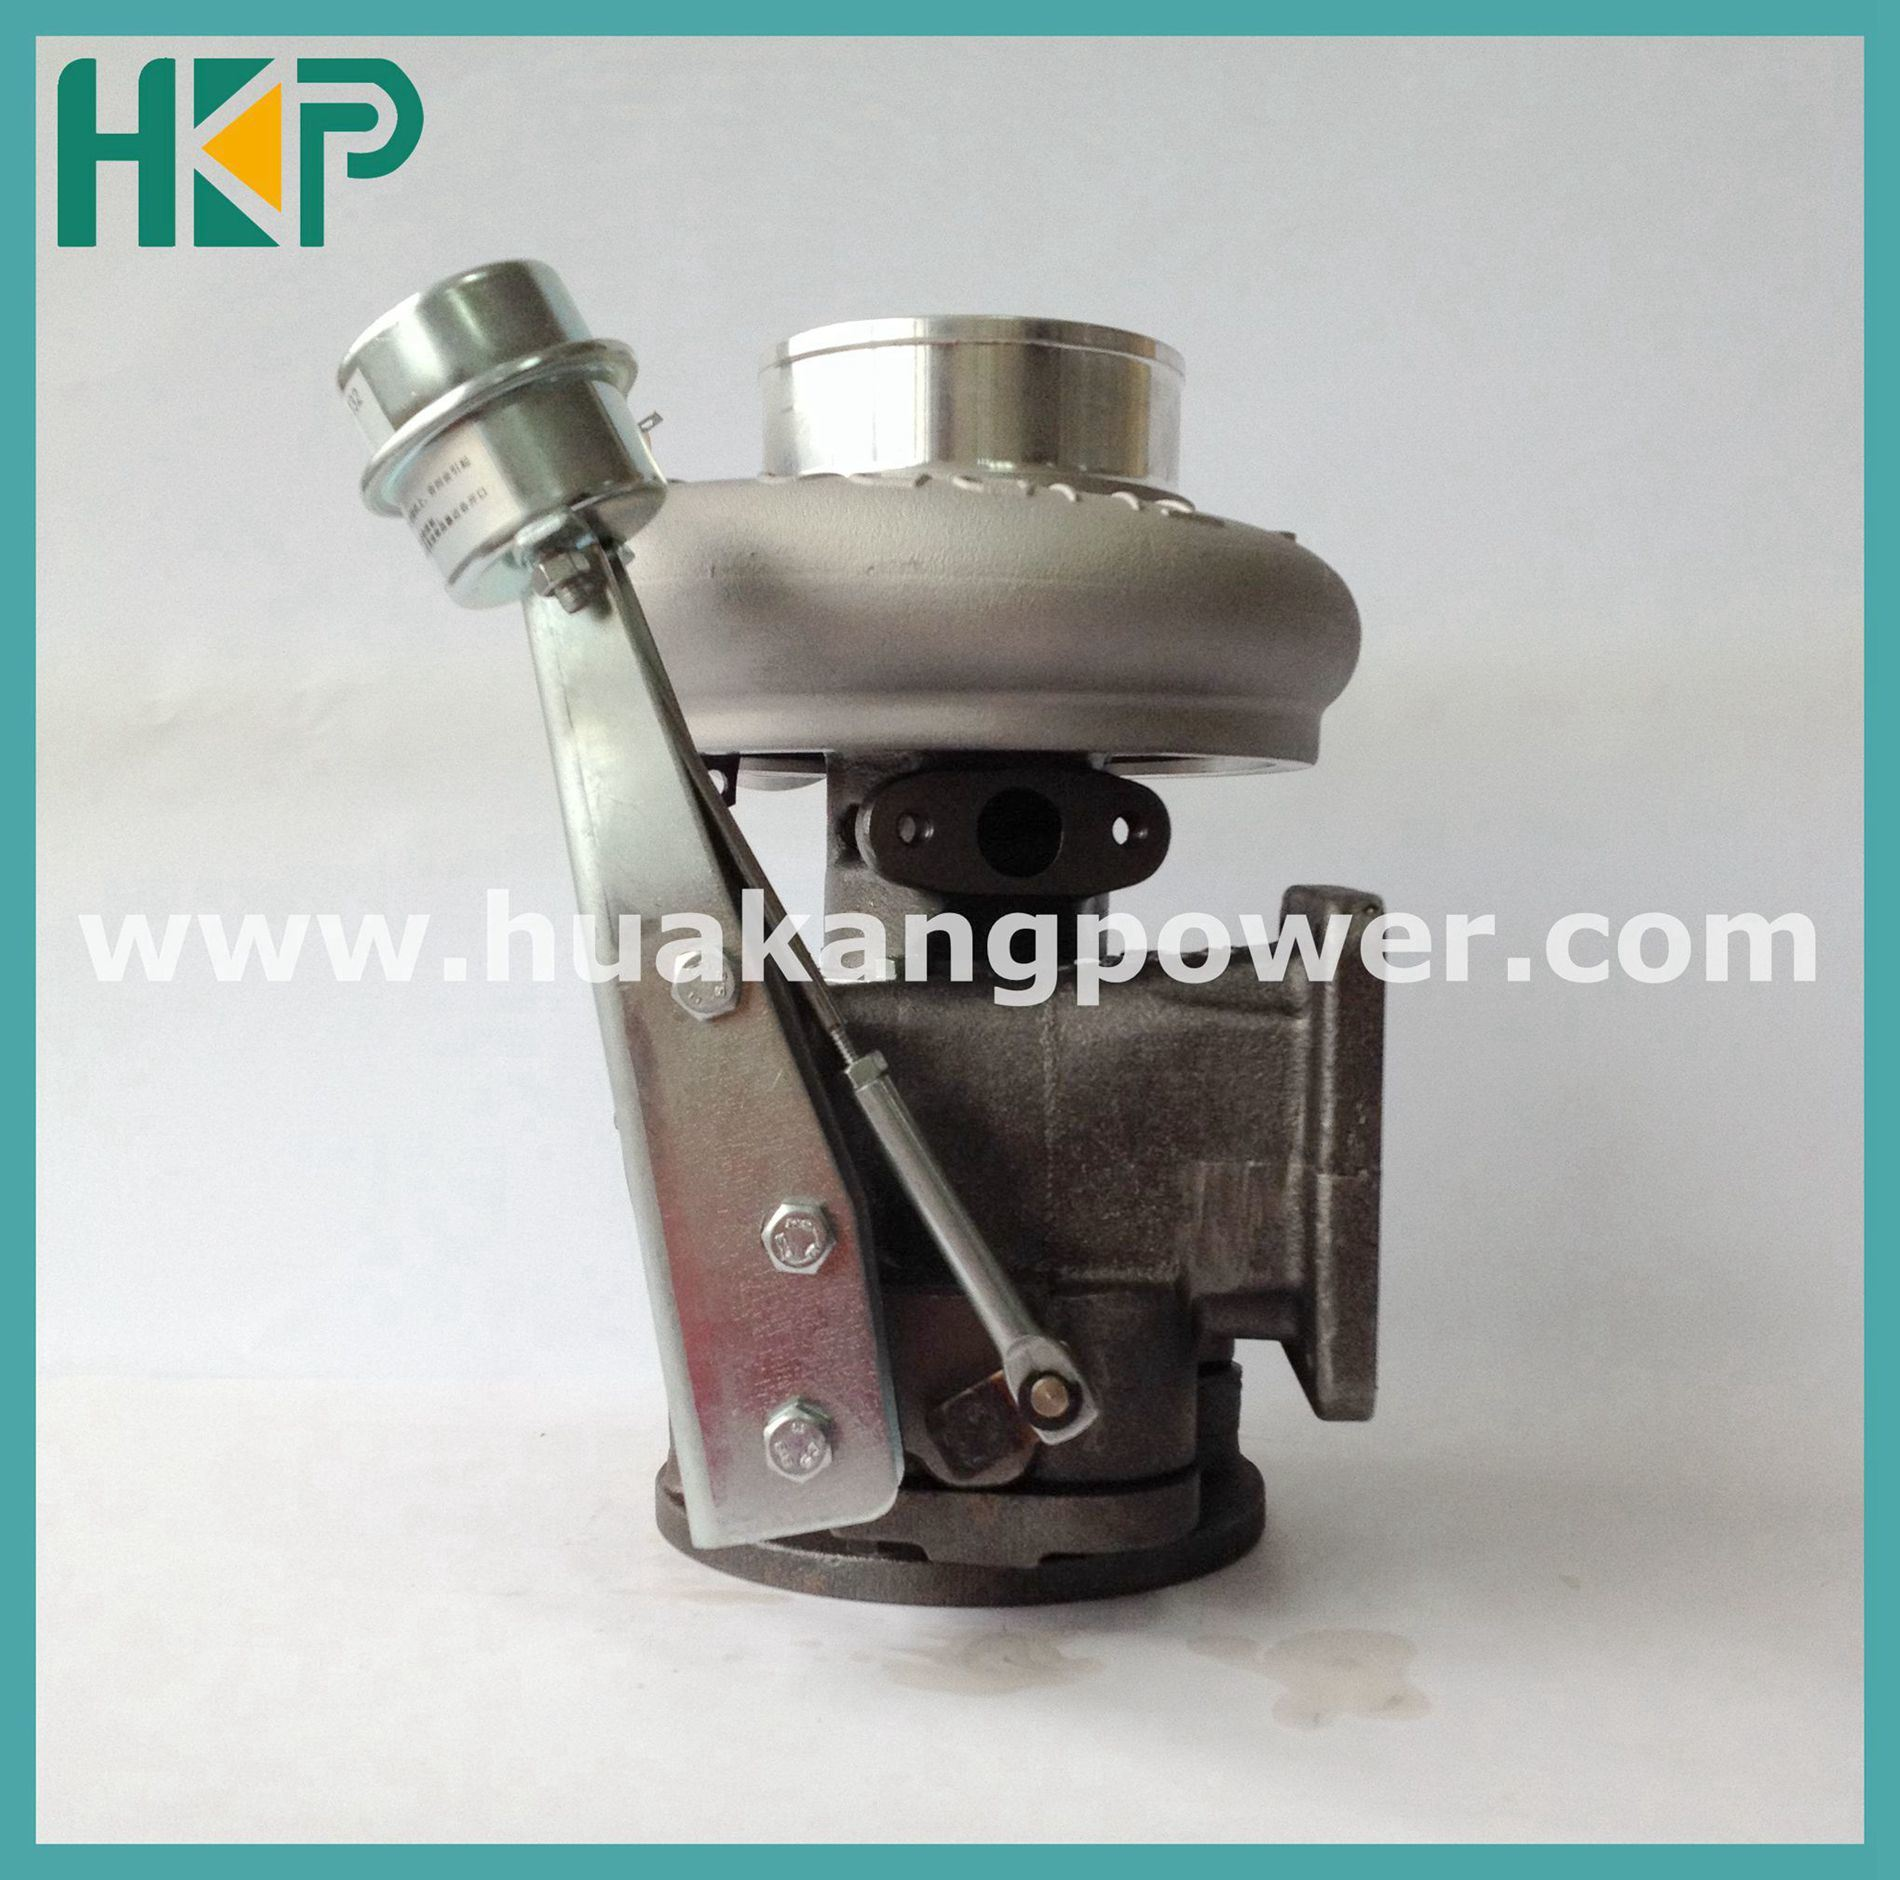 Turbo/Turbocharger for Hx40W 4047914 Oemvg2600118900